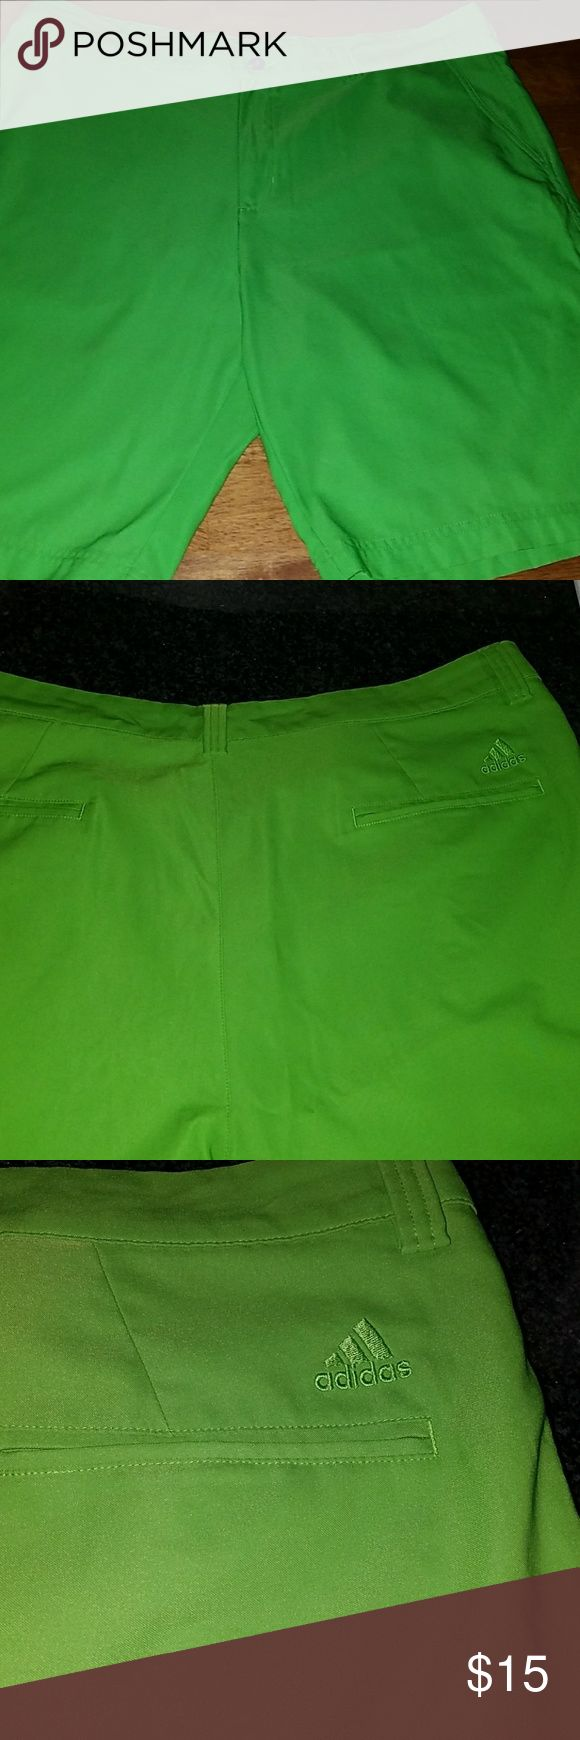 ADIDAS MEN'S GOLF SHORTS,  LIME GREEN SZ 38 Very popular lime green color men's golf shorts by Adidas size 38 in the waist. These are in excellent condition with no flaws. They are from a clean non-smoking home. adidas Shorts